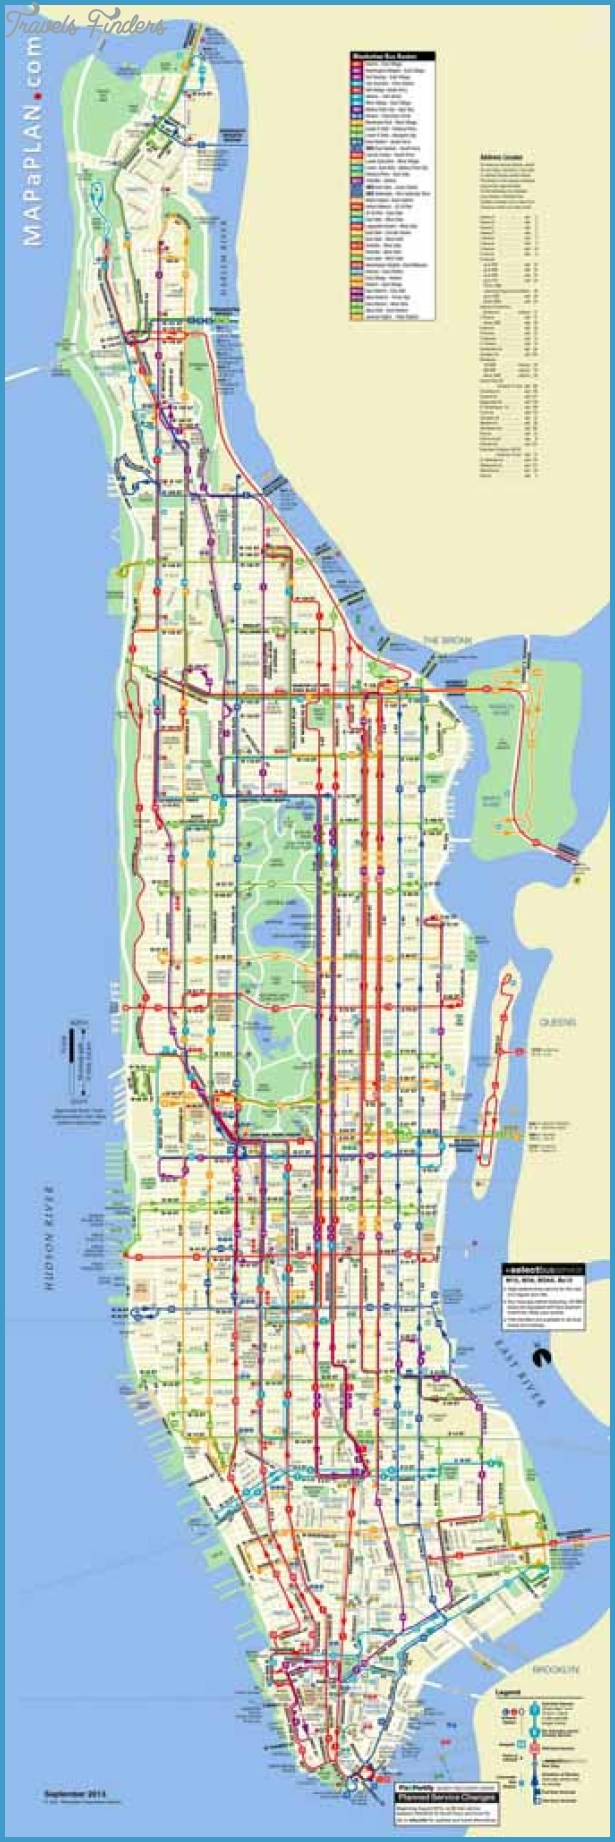 New york metro map tourist attractions travelsfinders com for Top 10 tourist attractions in nyc